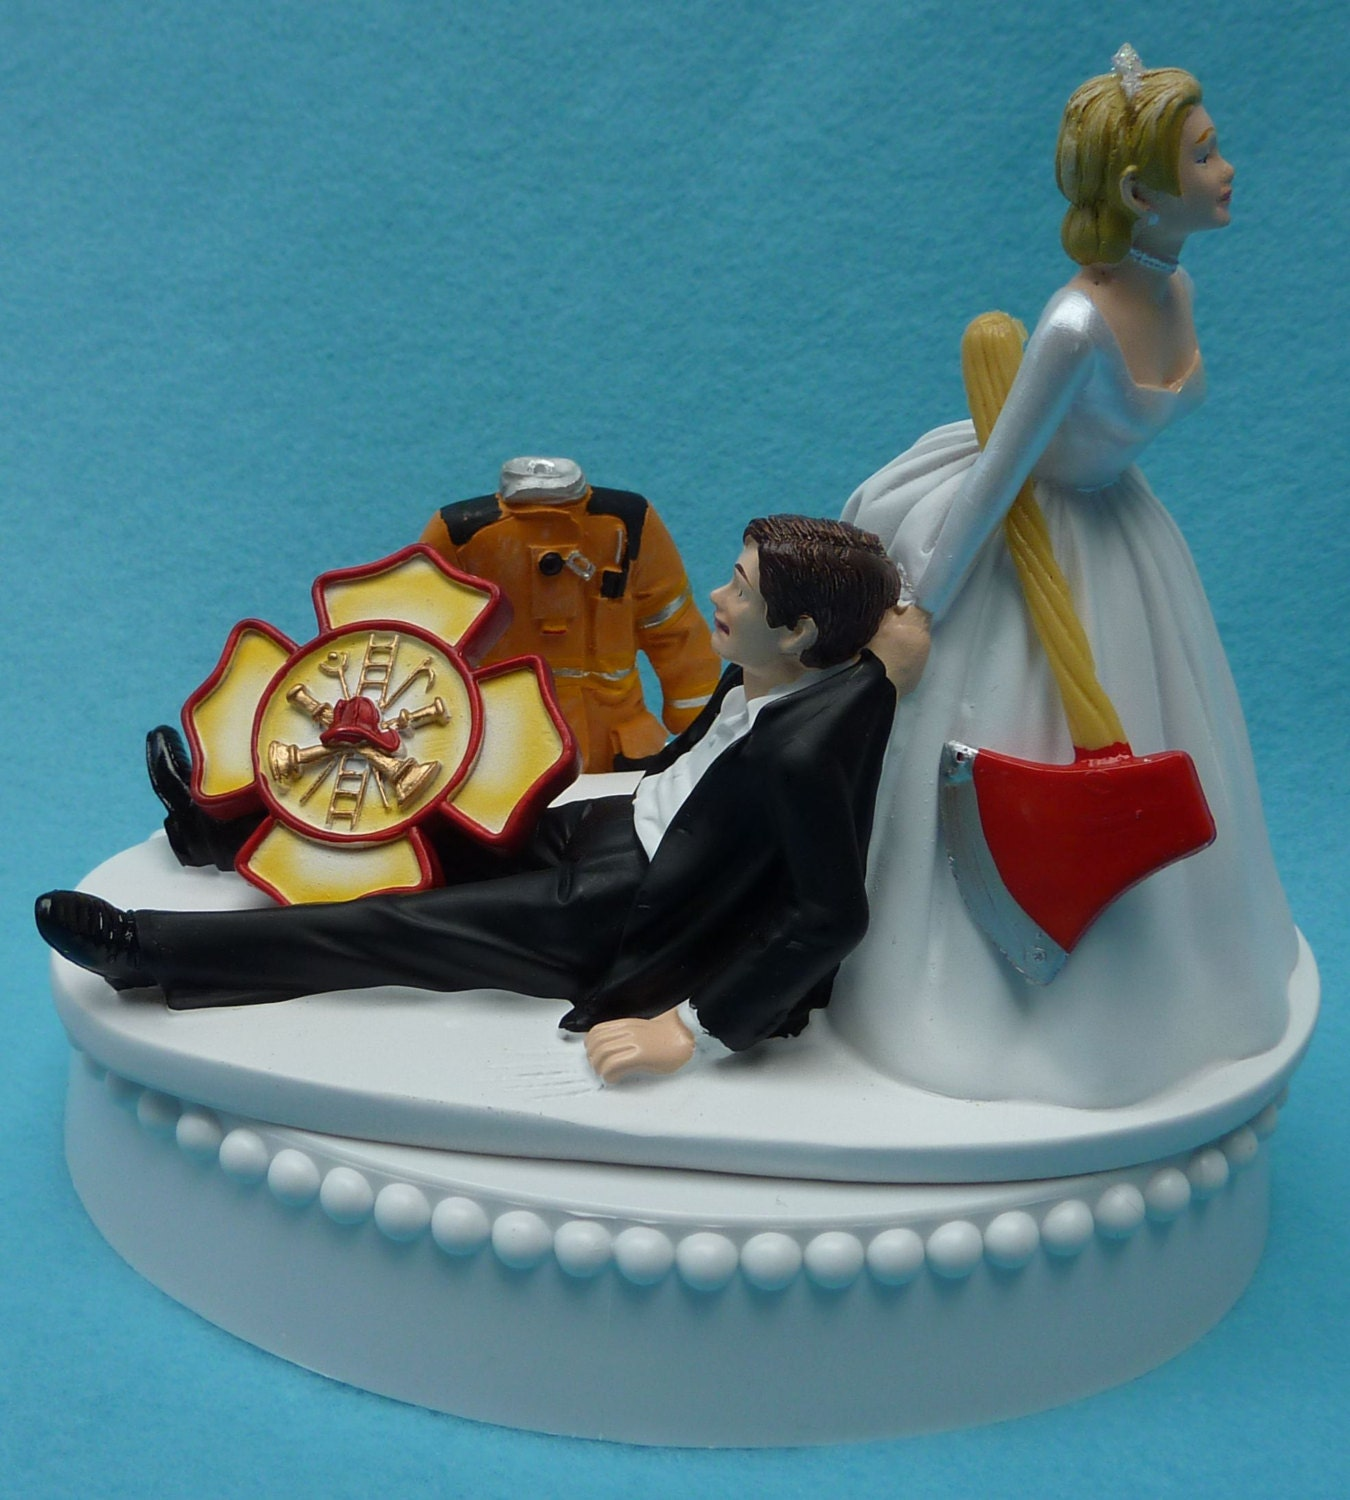 fireman cake toppers for wedding cakes wedding cake topper firefighter fireman logo axe 14270